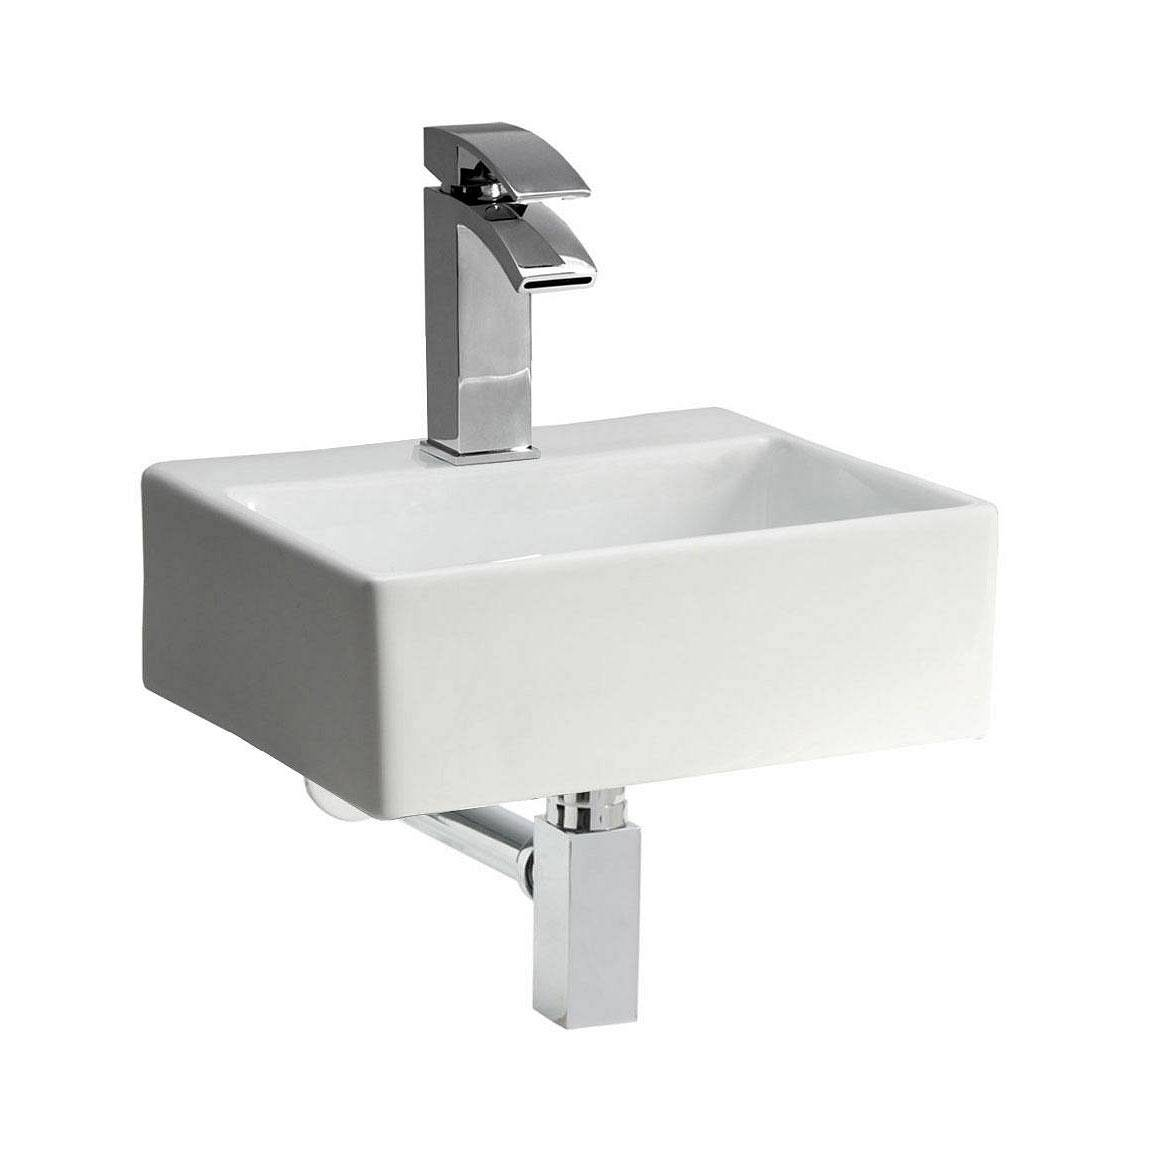 Image of Bologna Wall Mounted Basin PLUS Waste